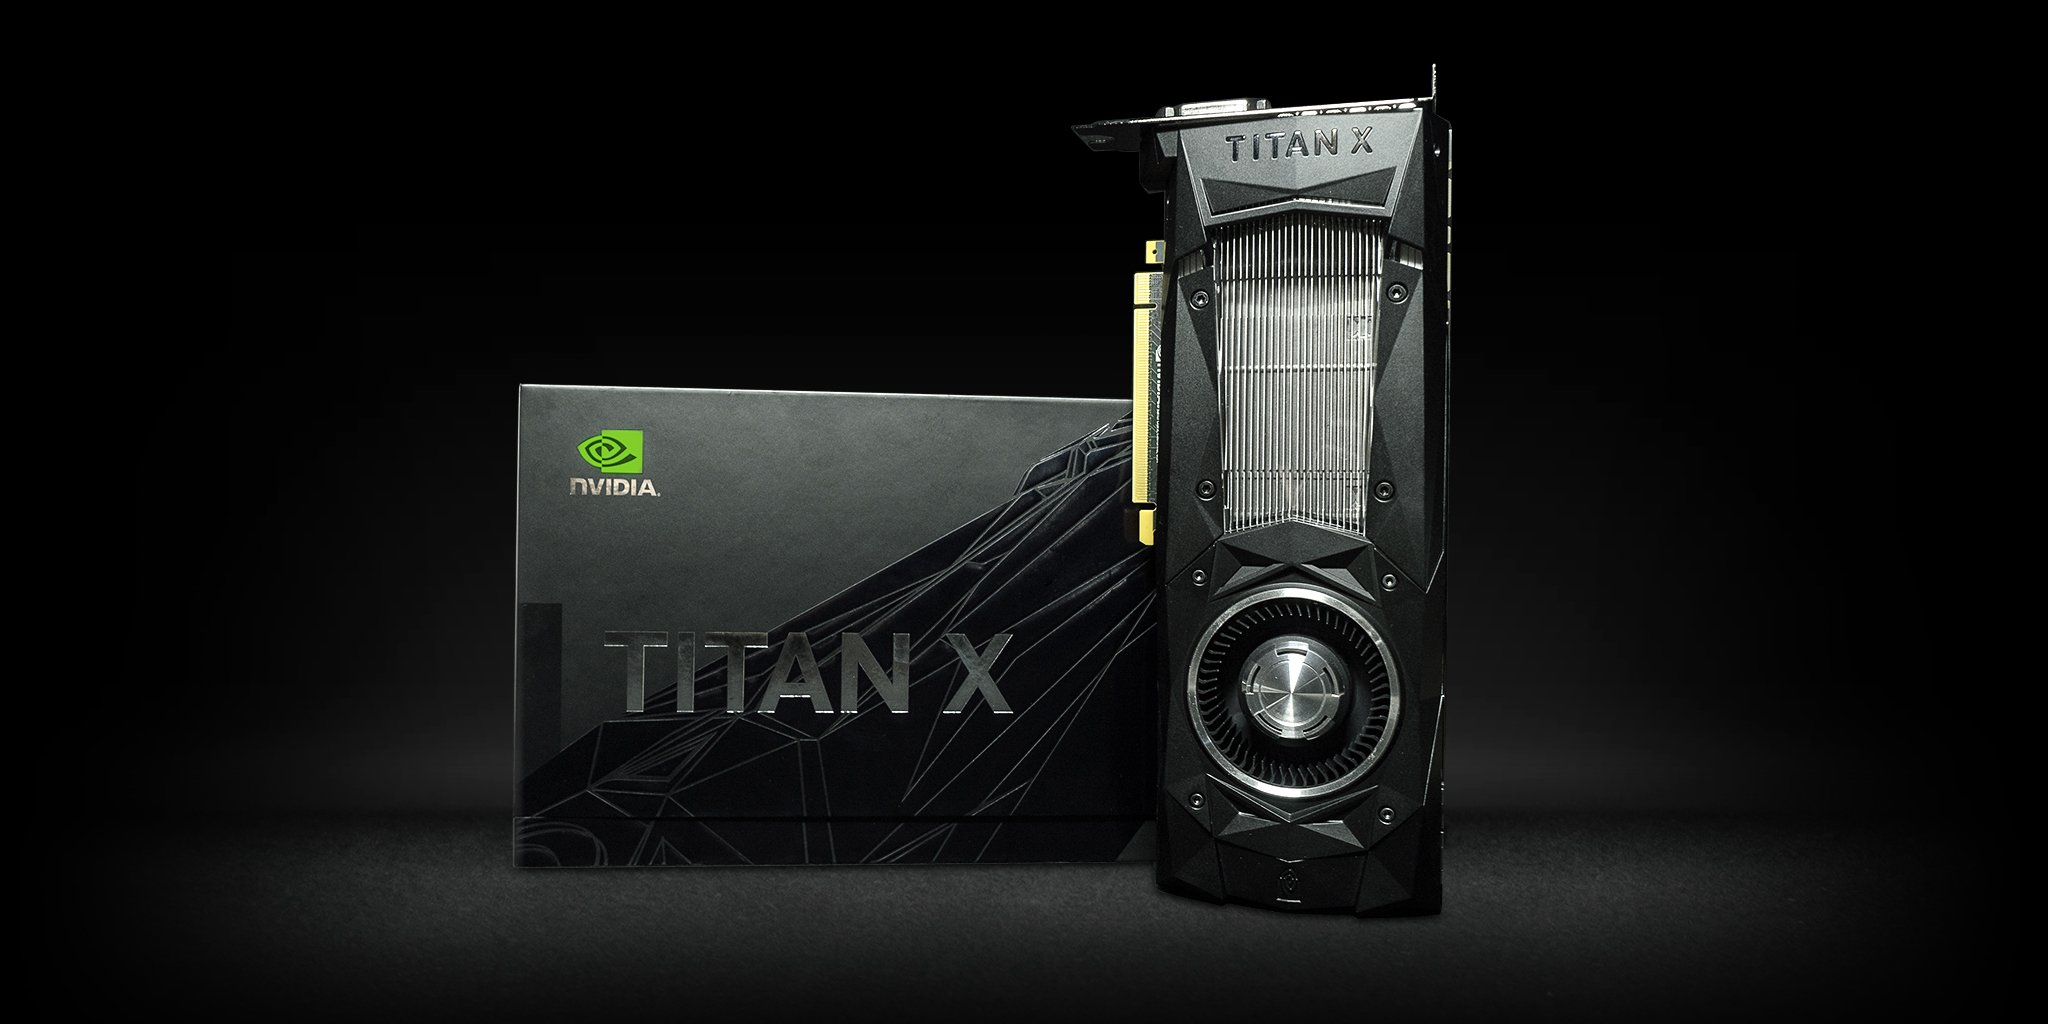 NVIDIA Titan X Official Package - NVIDIA Titan X get the cheapest price